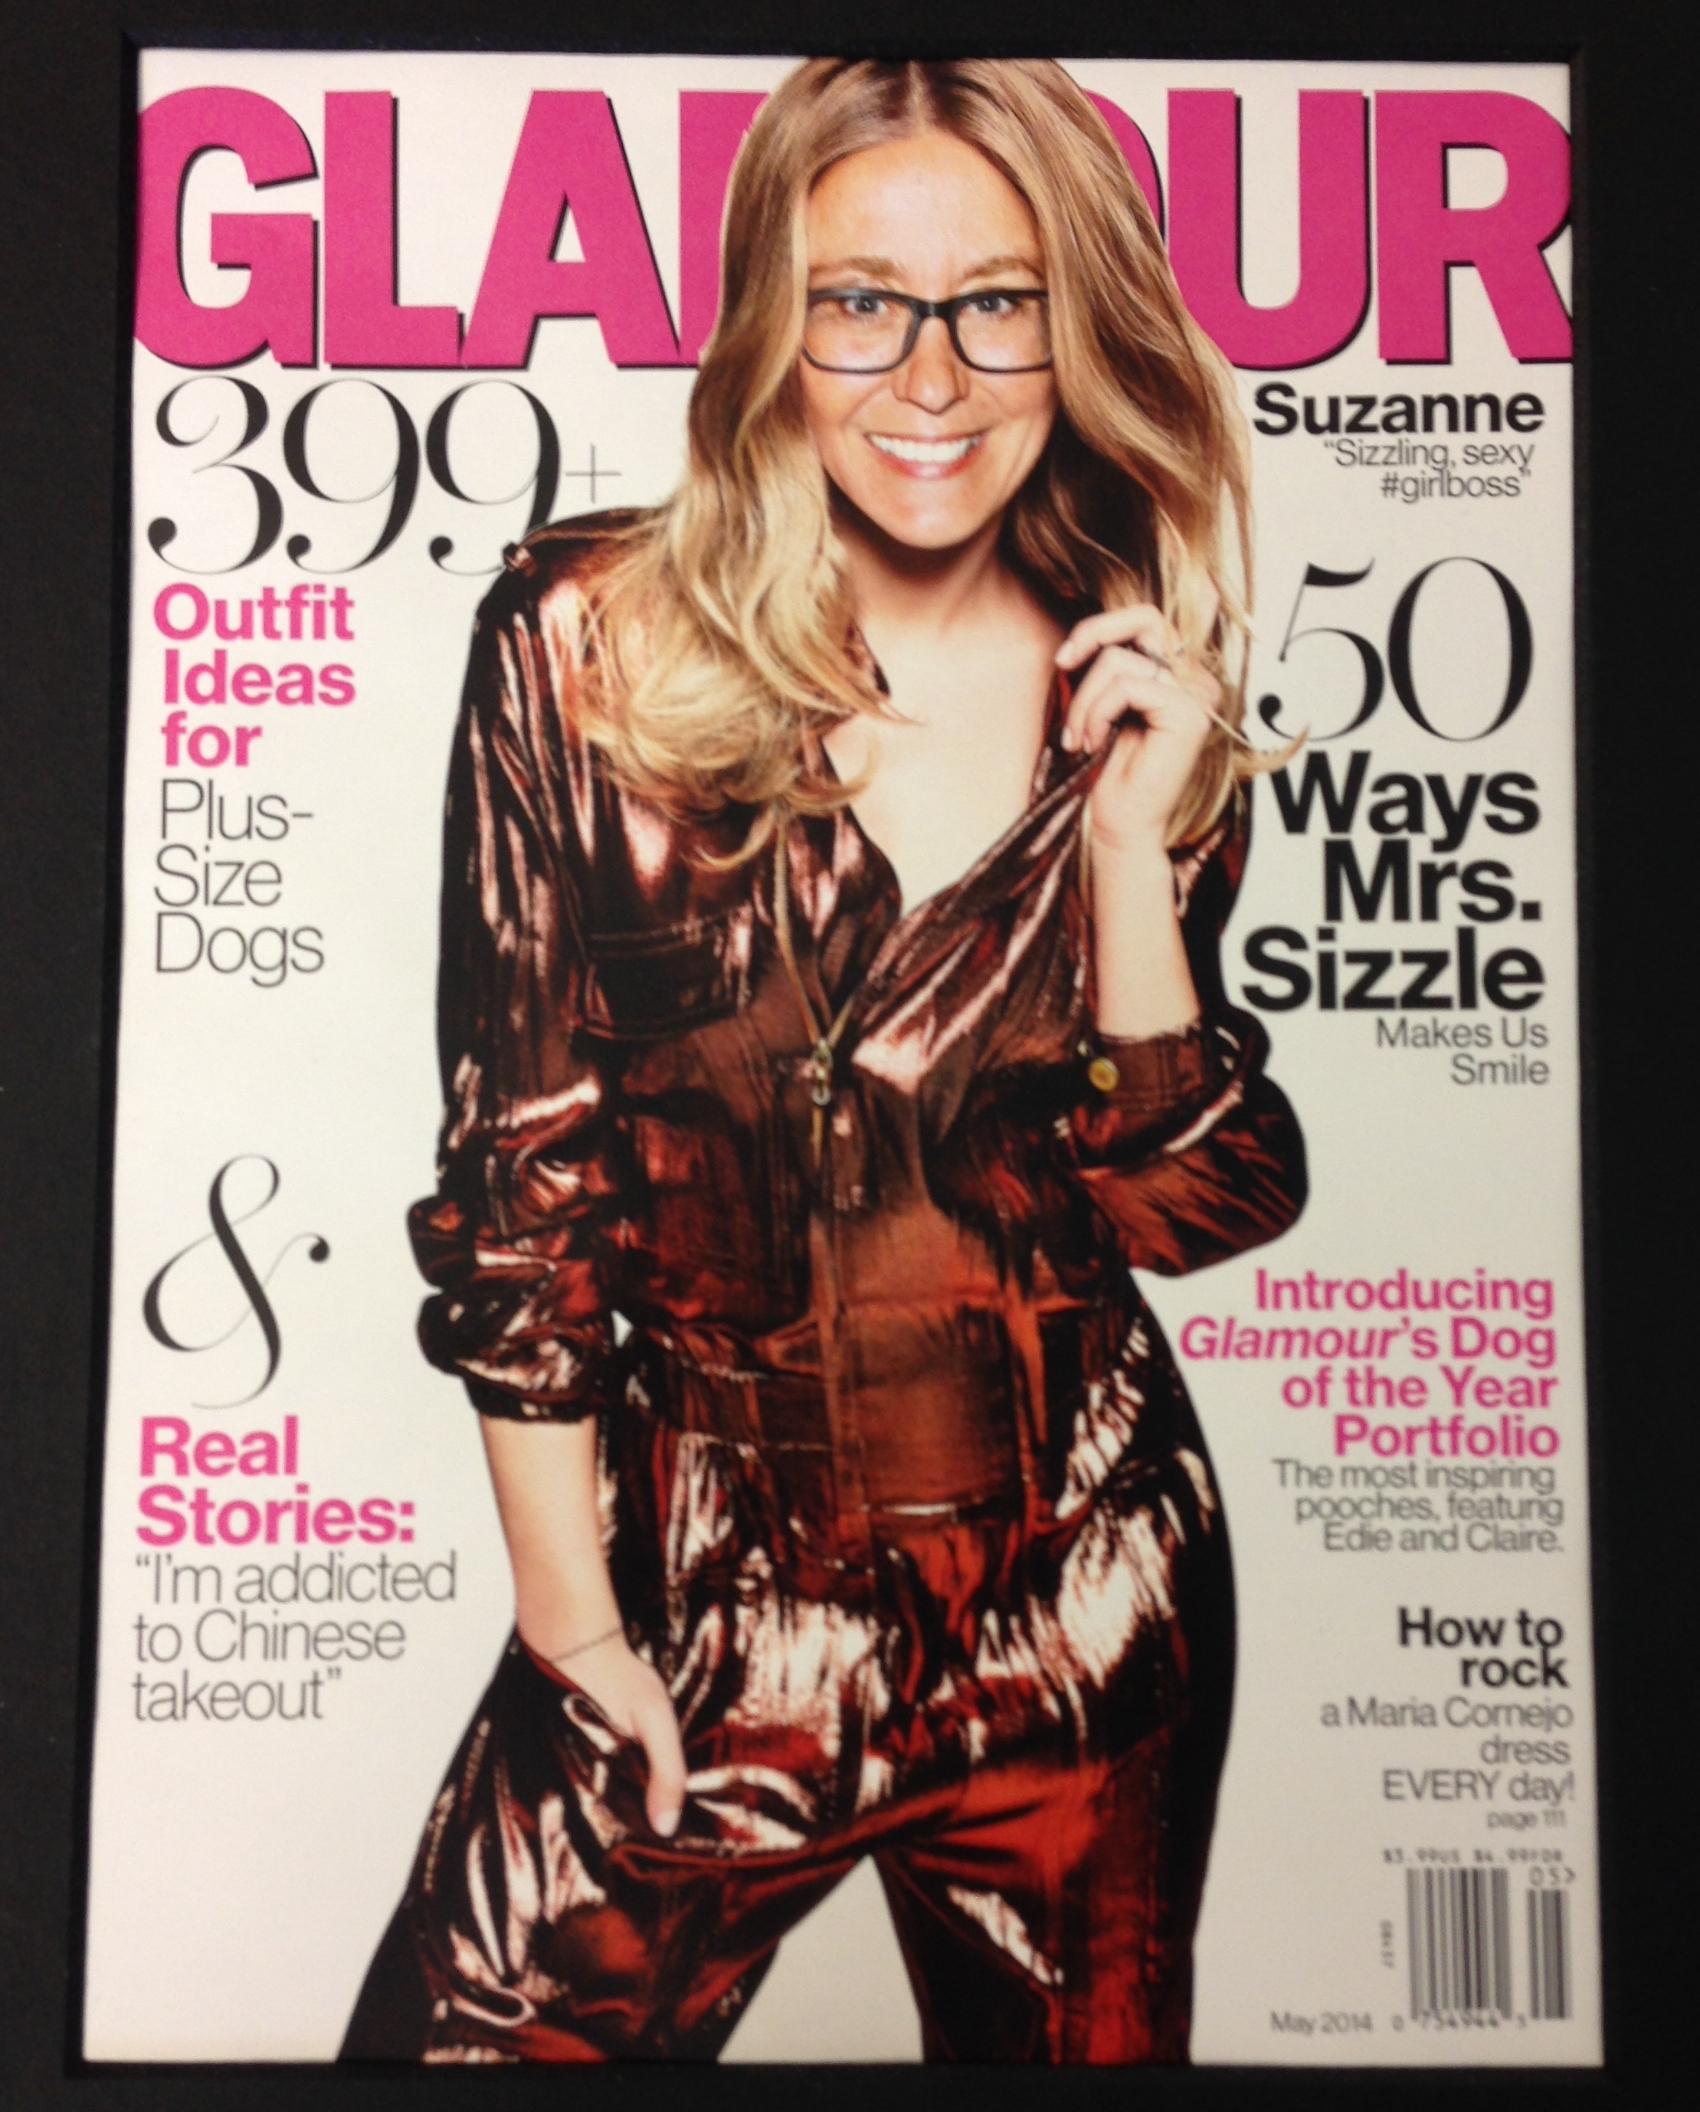 Me on the cover of Glamour magazine!